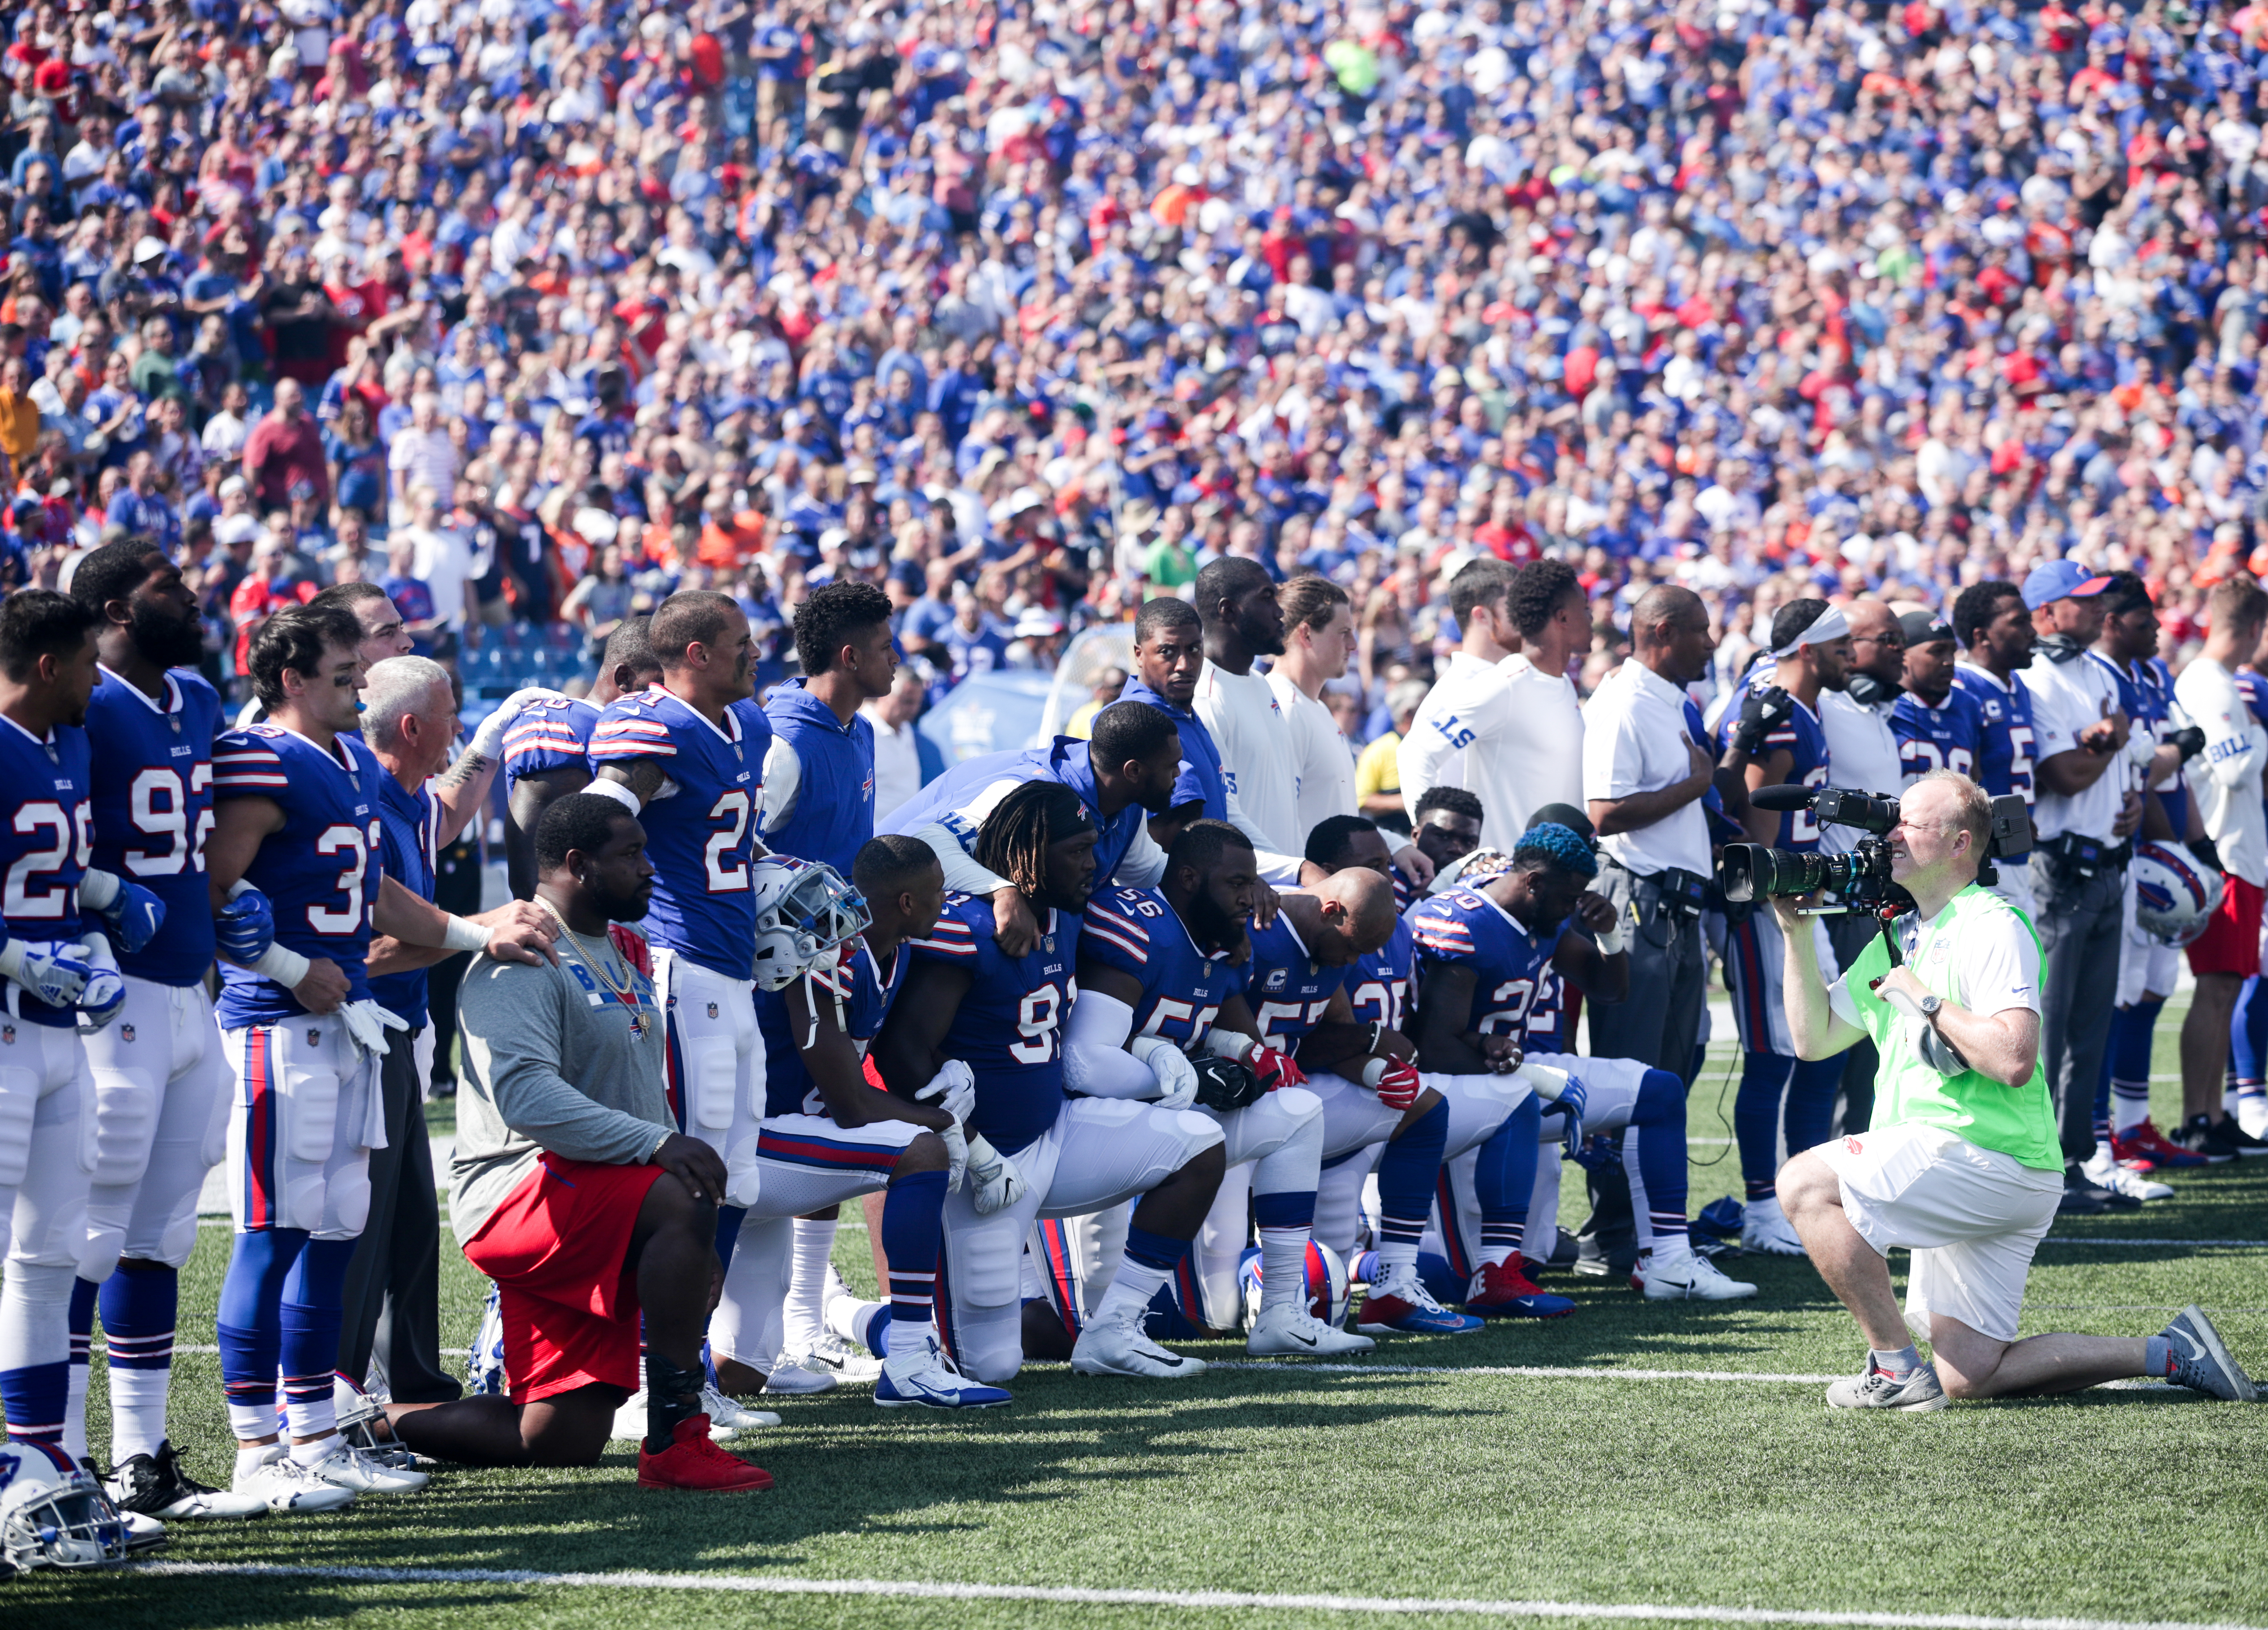 Buffalo Bills players kneel during the national anthem before their game against the Denver Broncos on Sept. 24, 2017 at New Era Field in Orchard Park, New York.